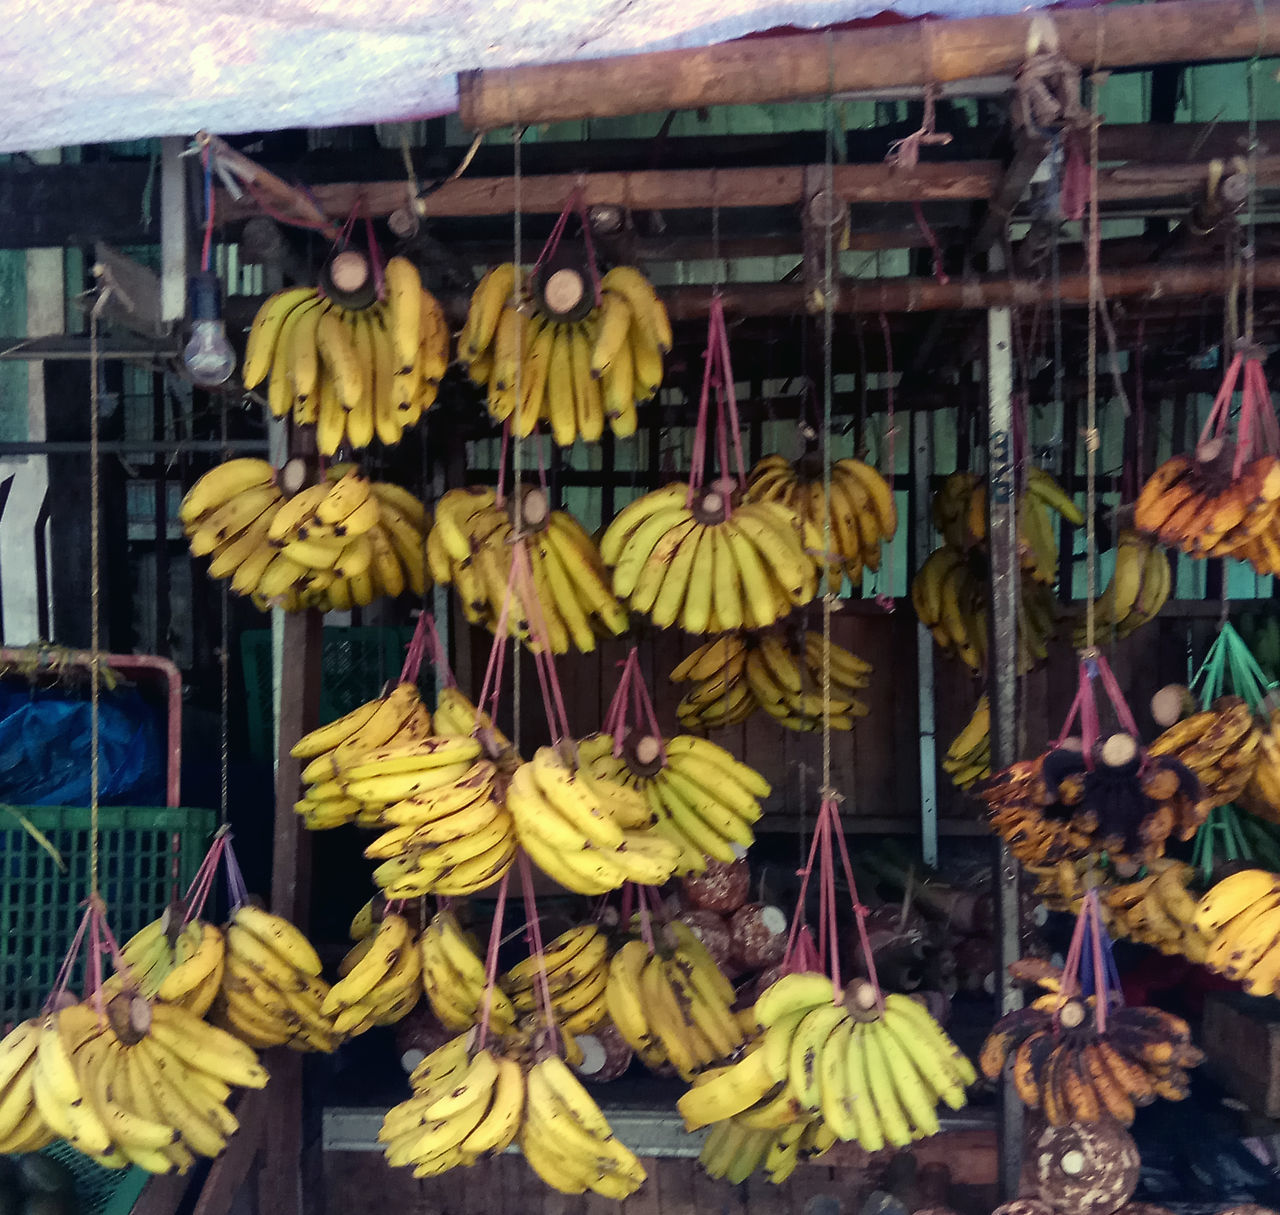 Bananas in traditional markets Banana Banana Tree Bunch Close-up Day Food Food And Drink For Sale Freshness Fruit Hanging Healthy Eating Indoors  Large Group Of Objects Low Angle View Market No People Retail  Streetphotography Variation Yellow